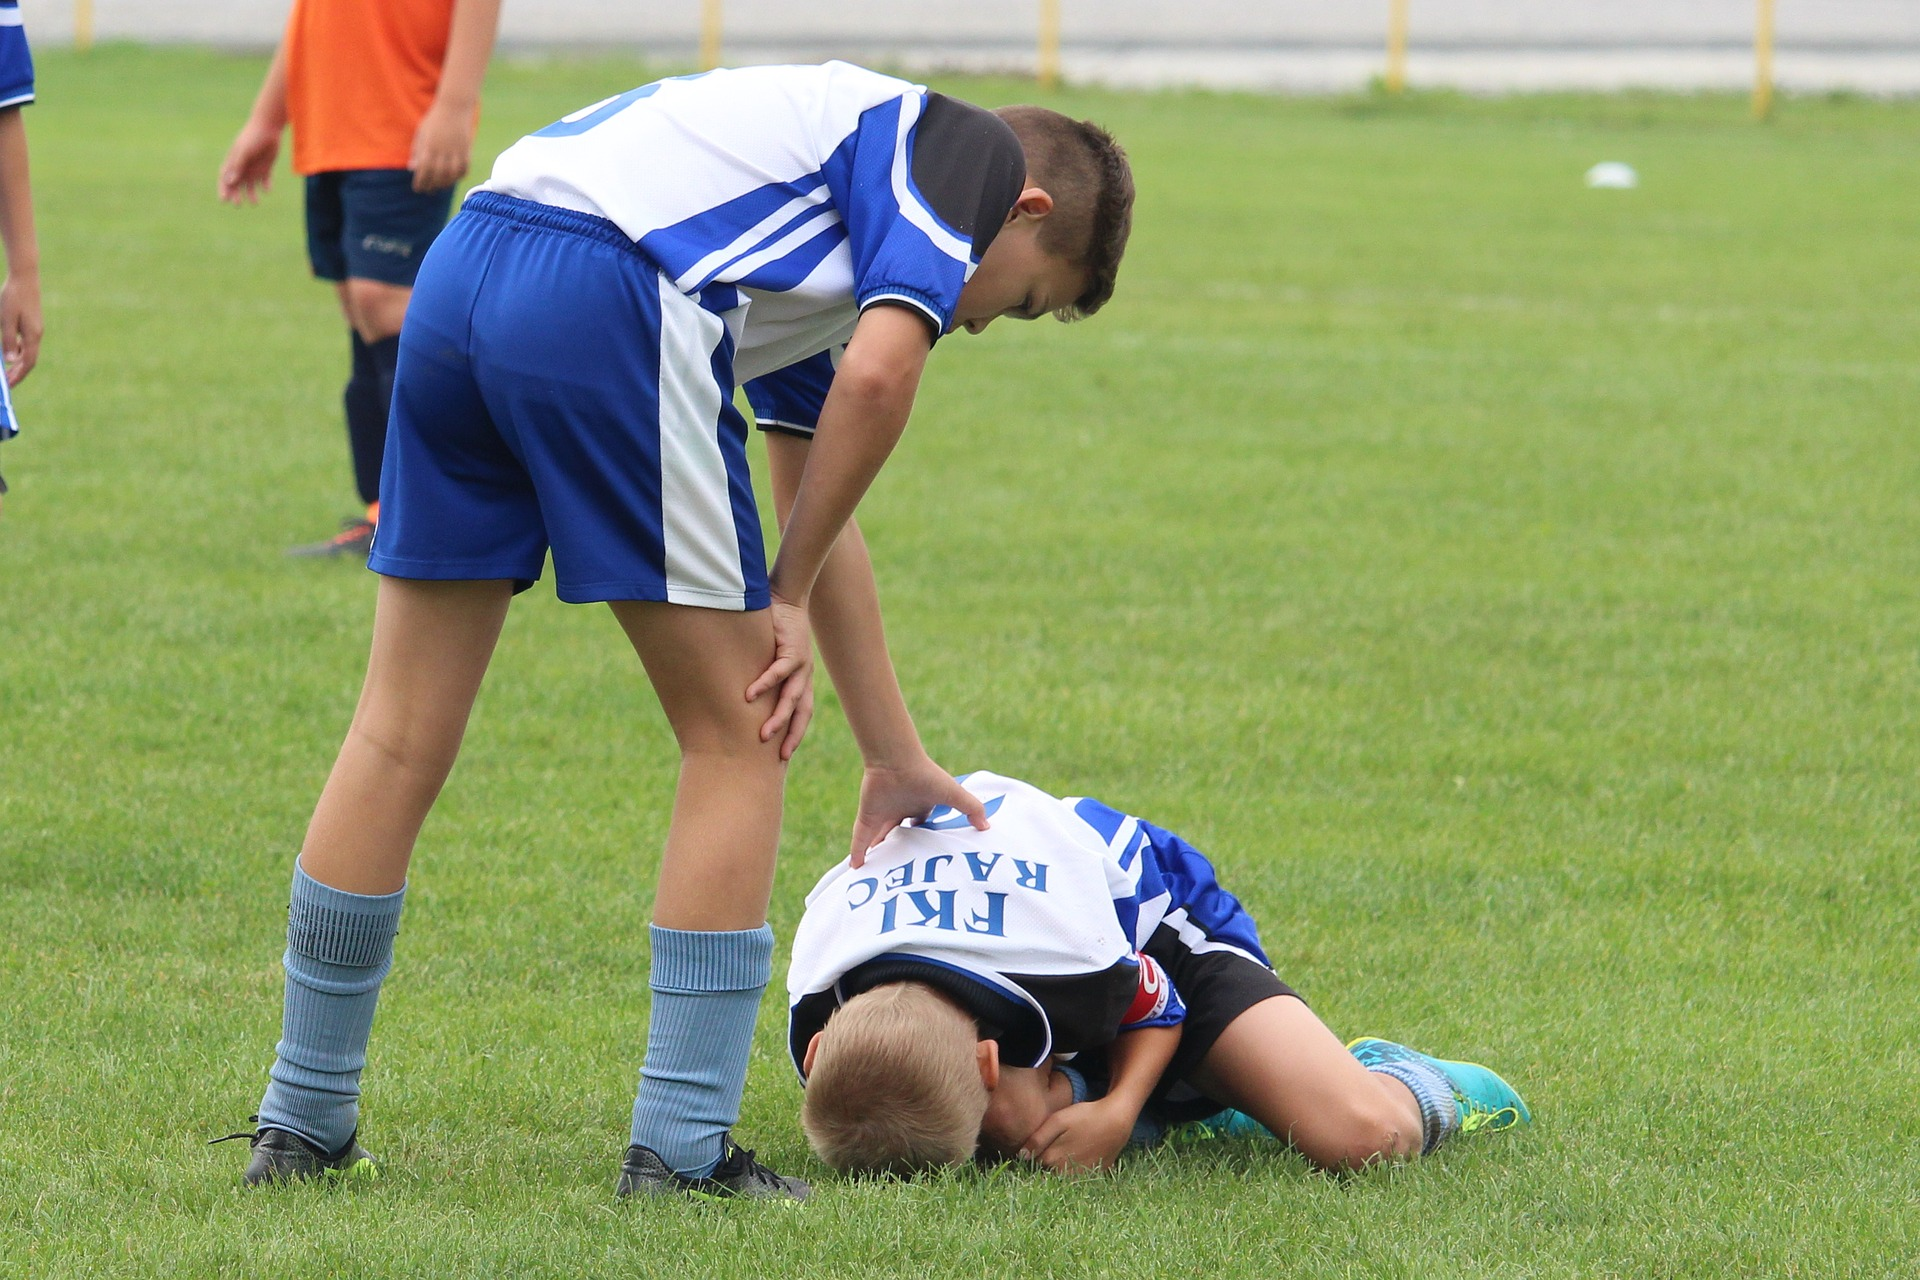 soccer-football-injury